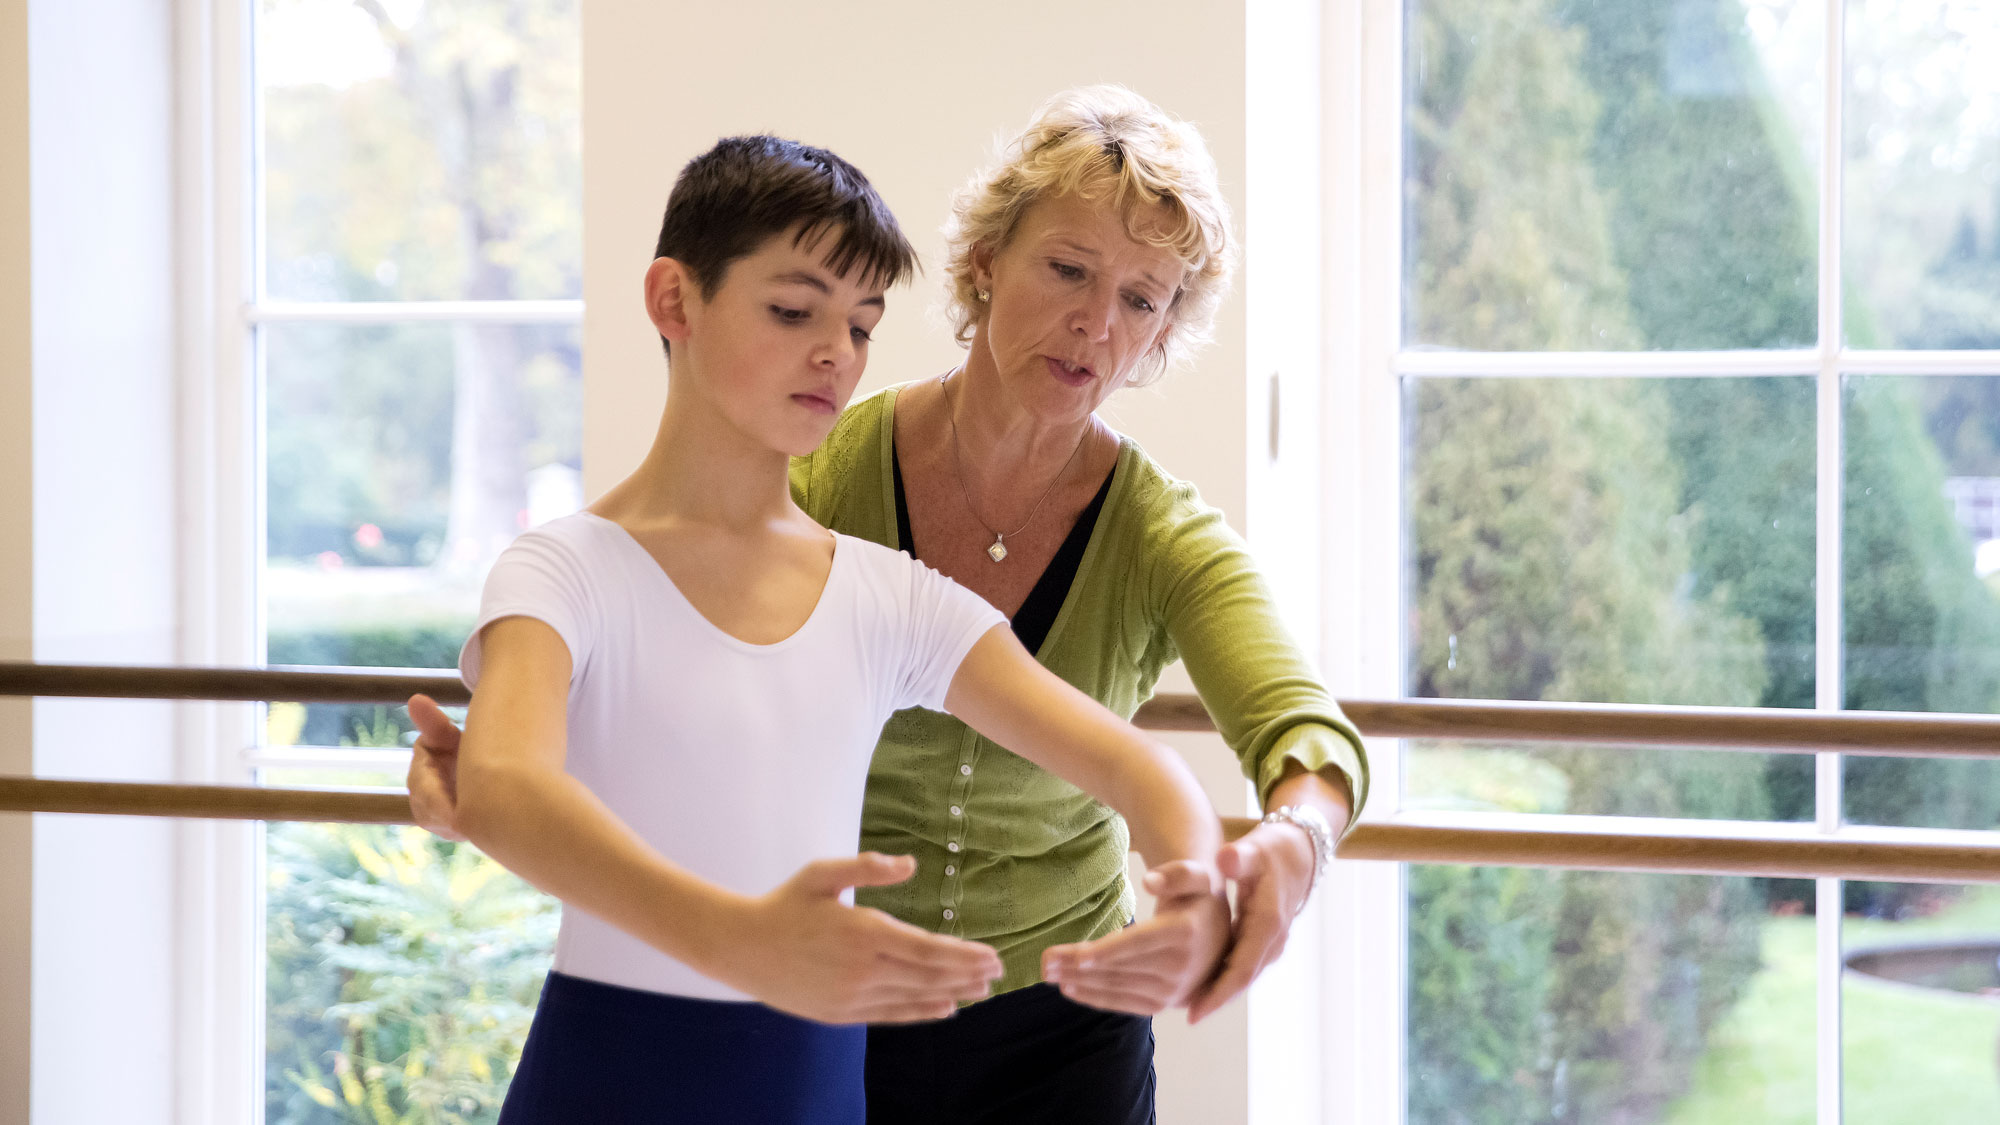 Ballet teachers behind a student doing centre work offering corrections